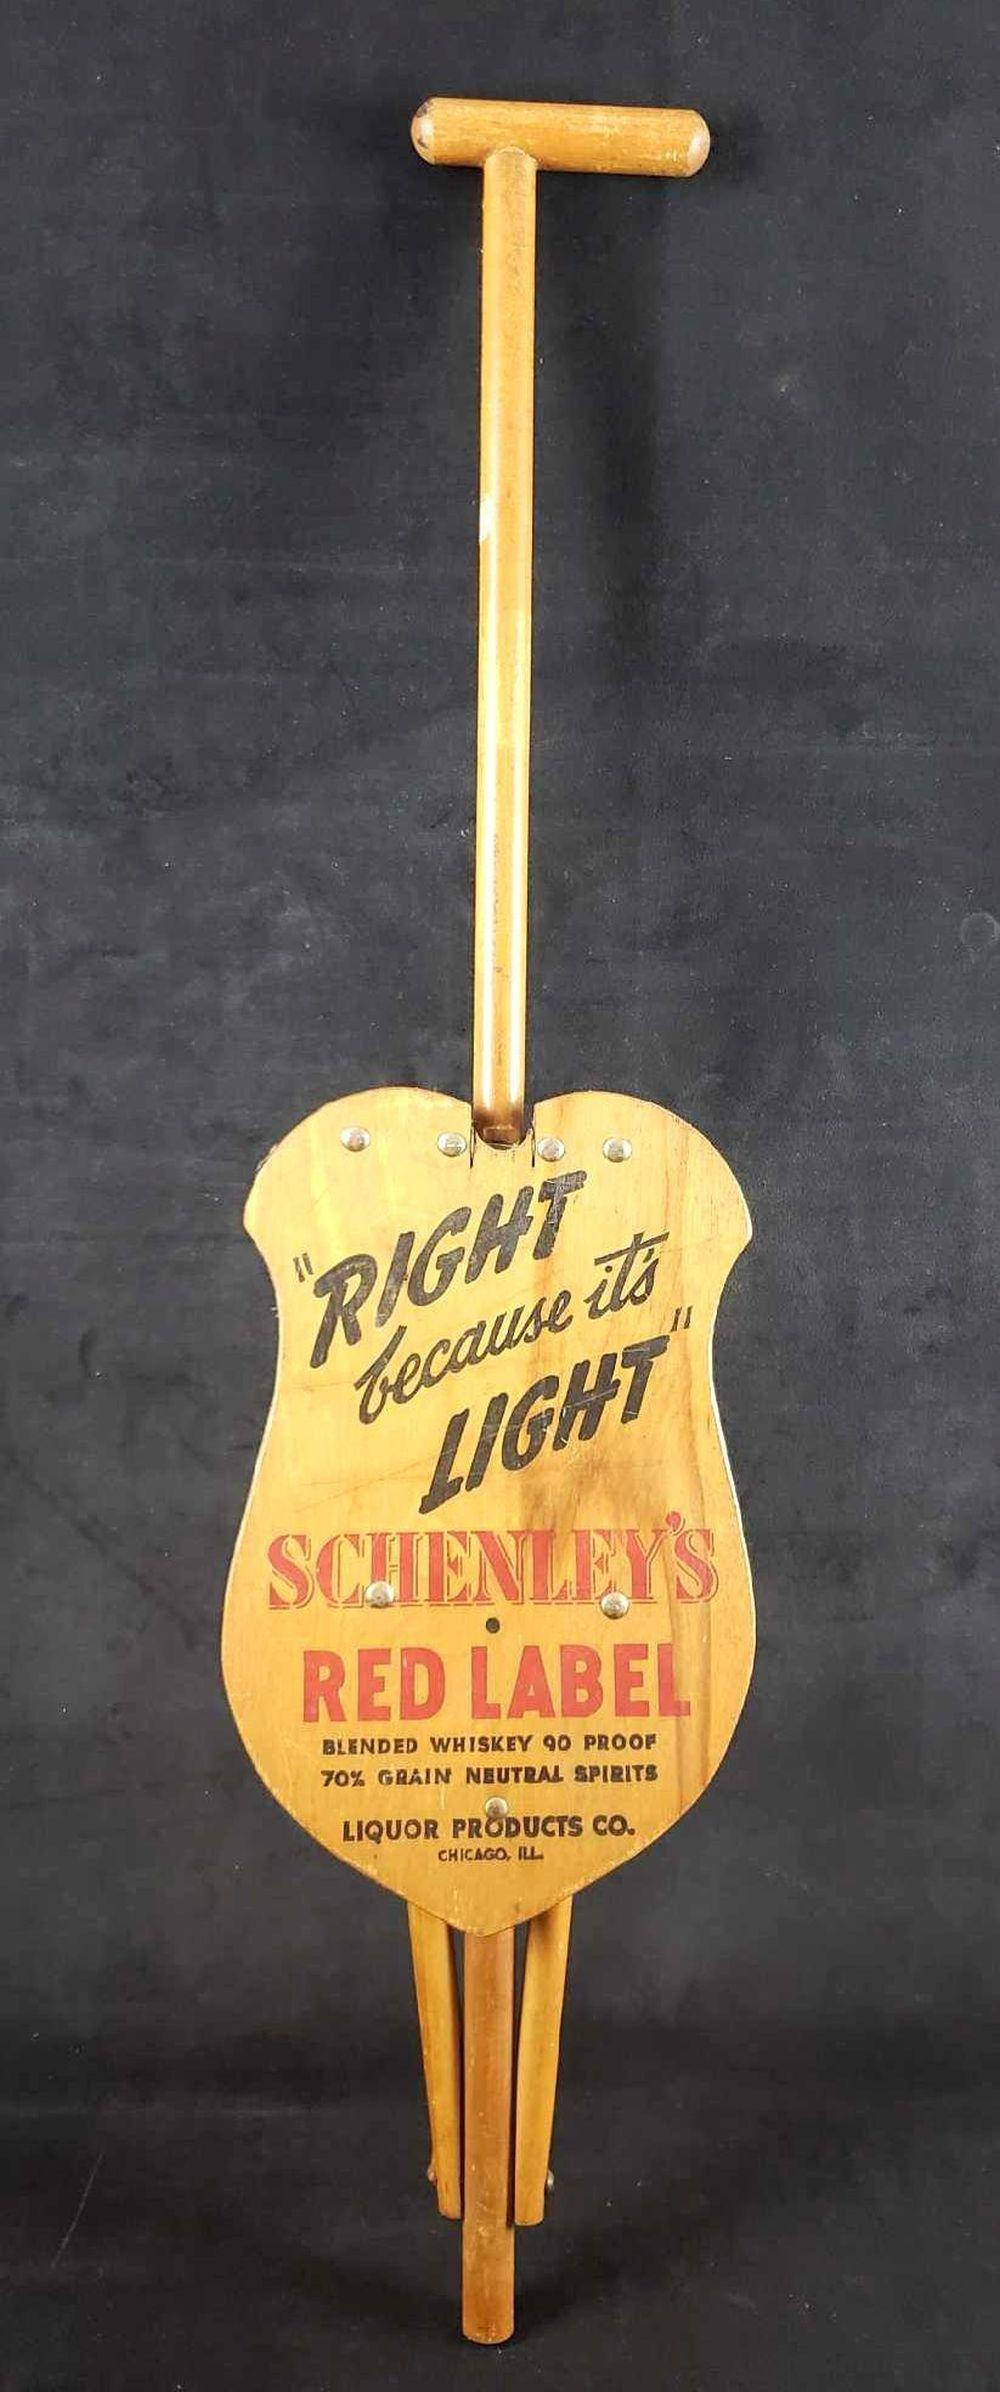 Lot 219: Right Because Its Light Schenleys Red Label Blended Whiskey 90 Proof Promotional Vintage Walking Stick